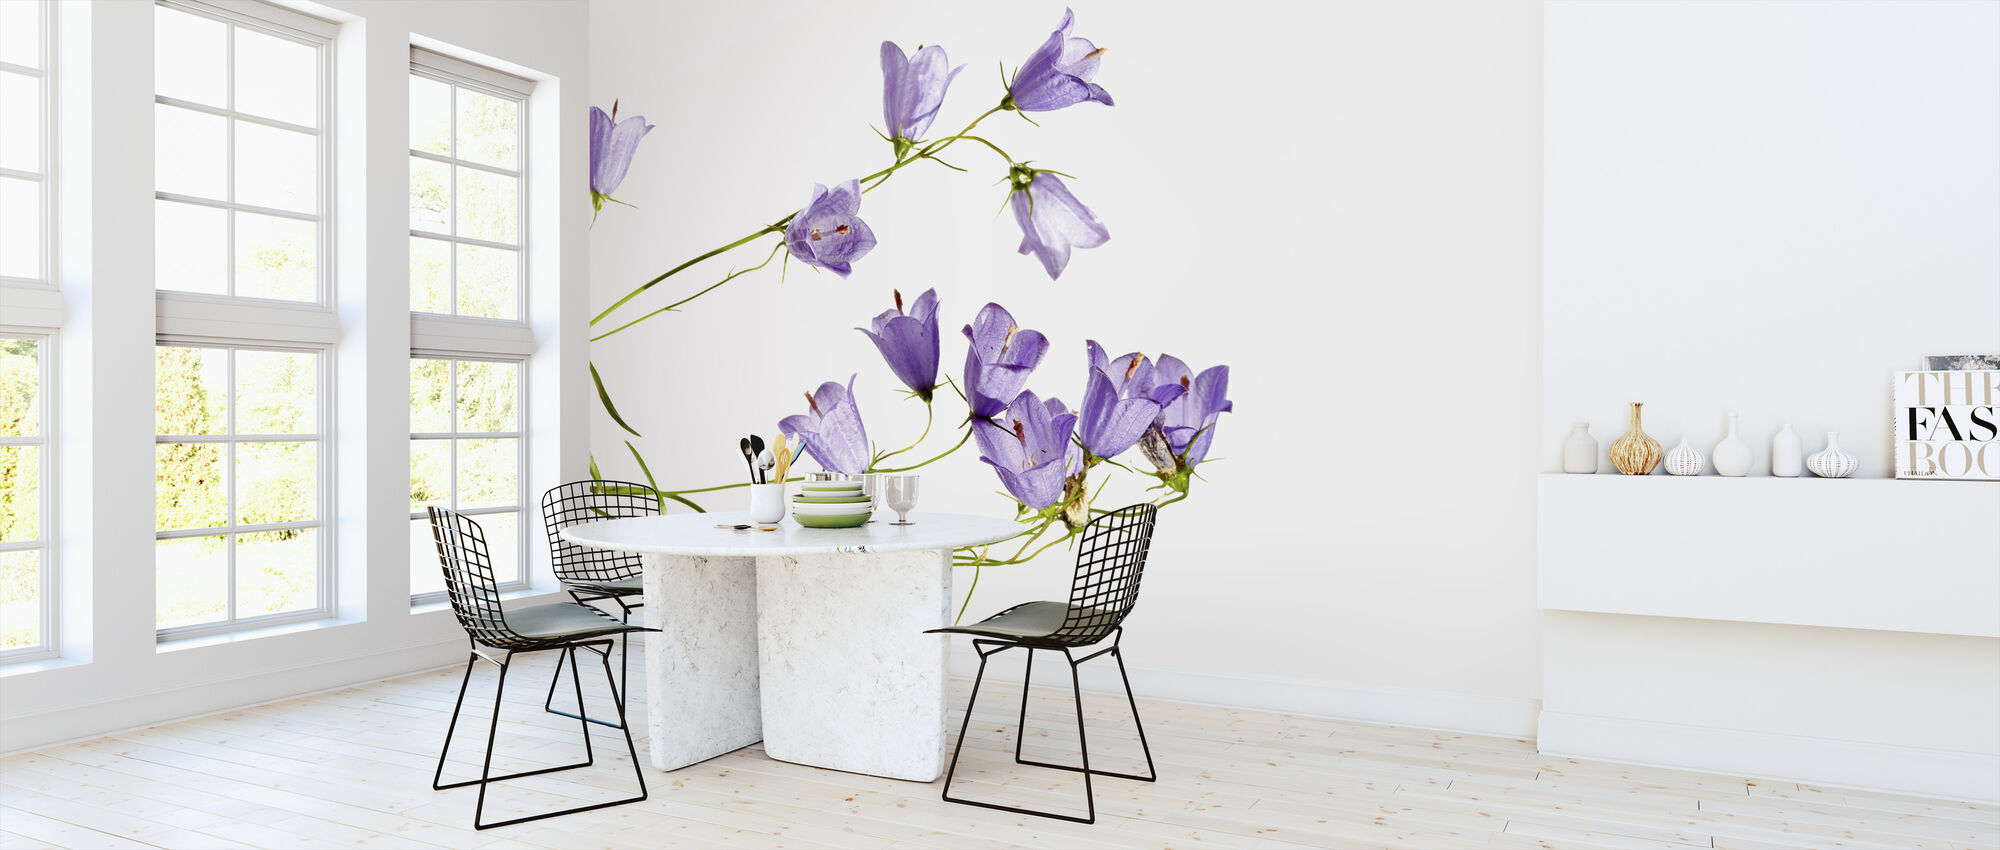 Sheer Blubells - Wallpaper - Kitchen